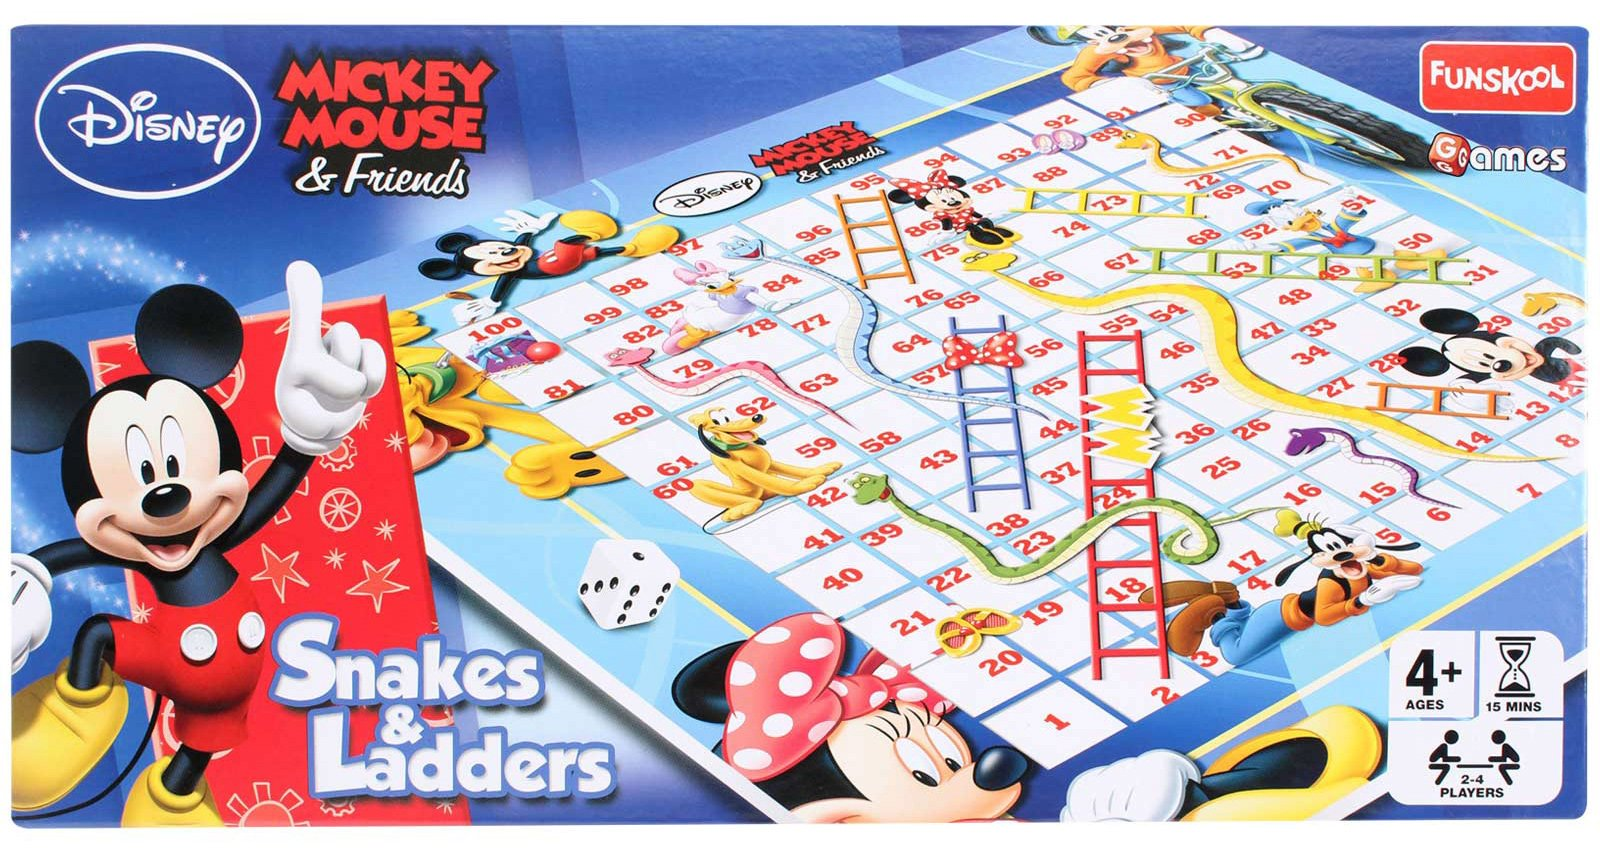 Disney Mickey Mouse & Friends Snakes & Ladders